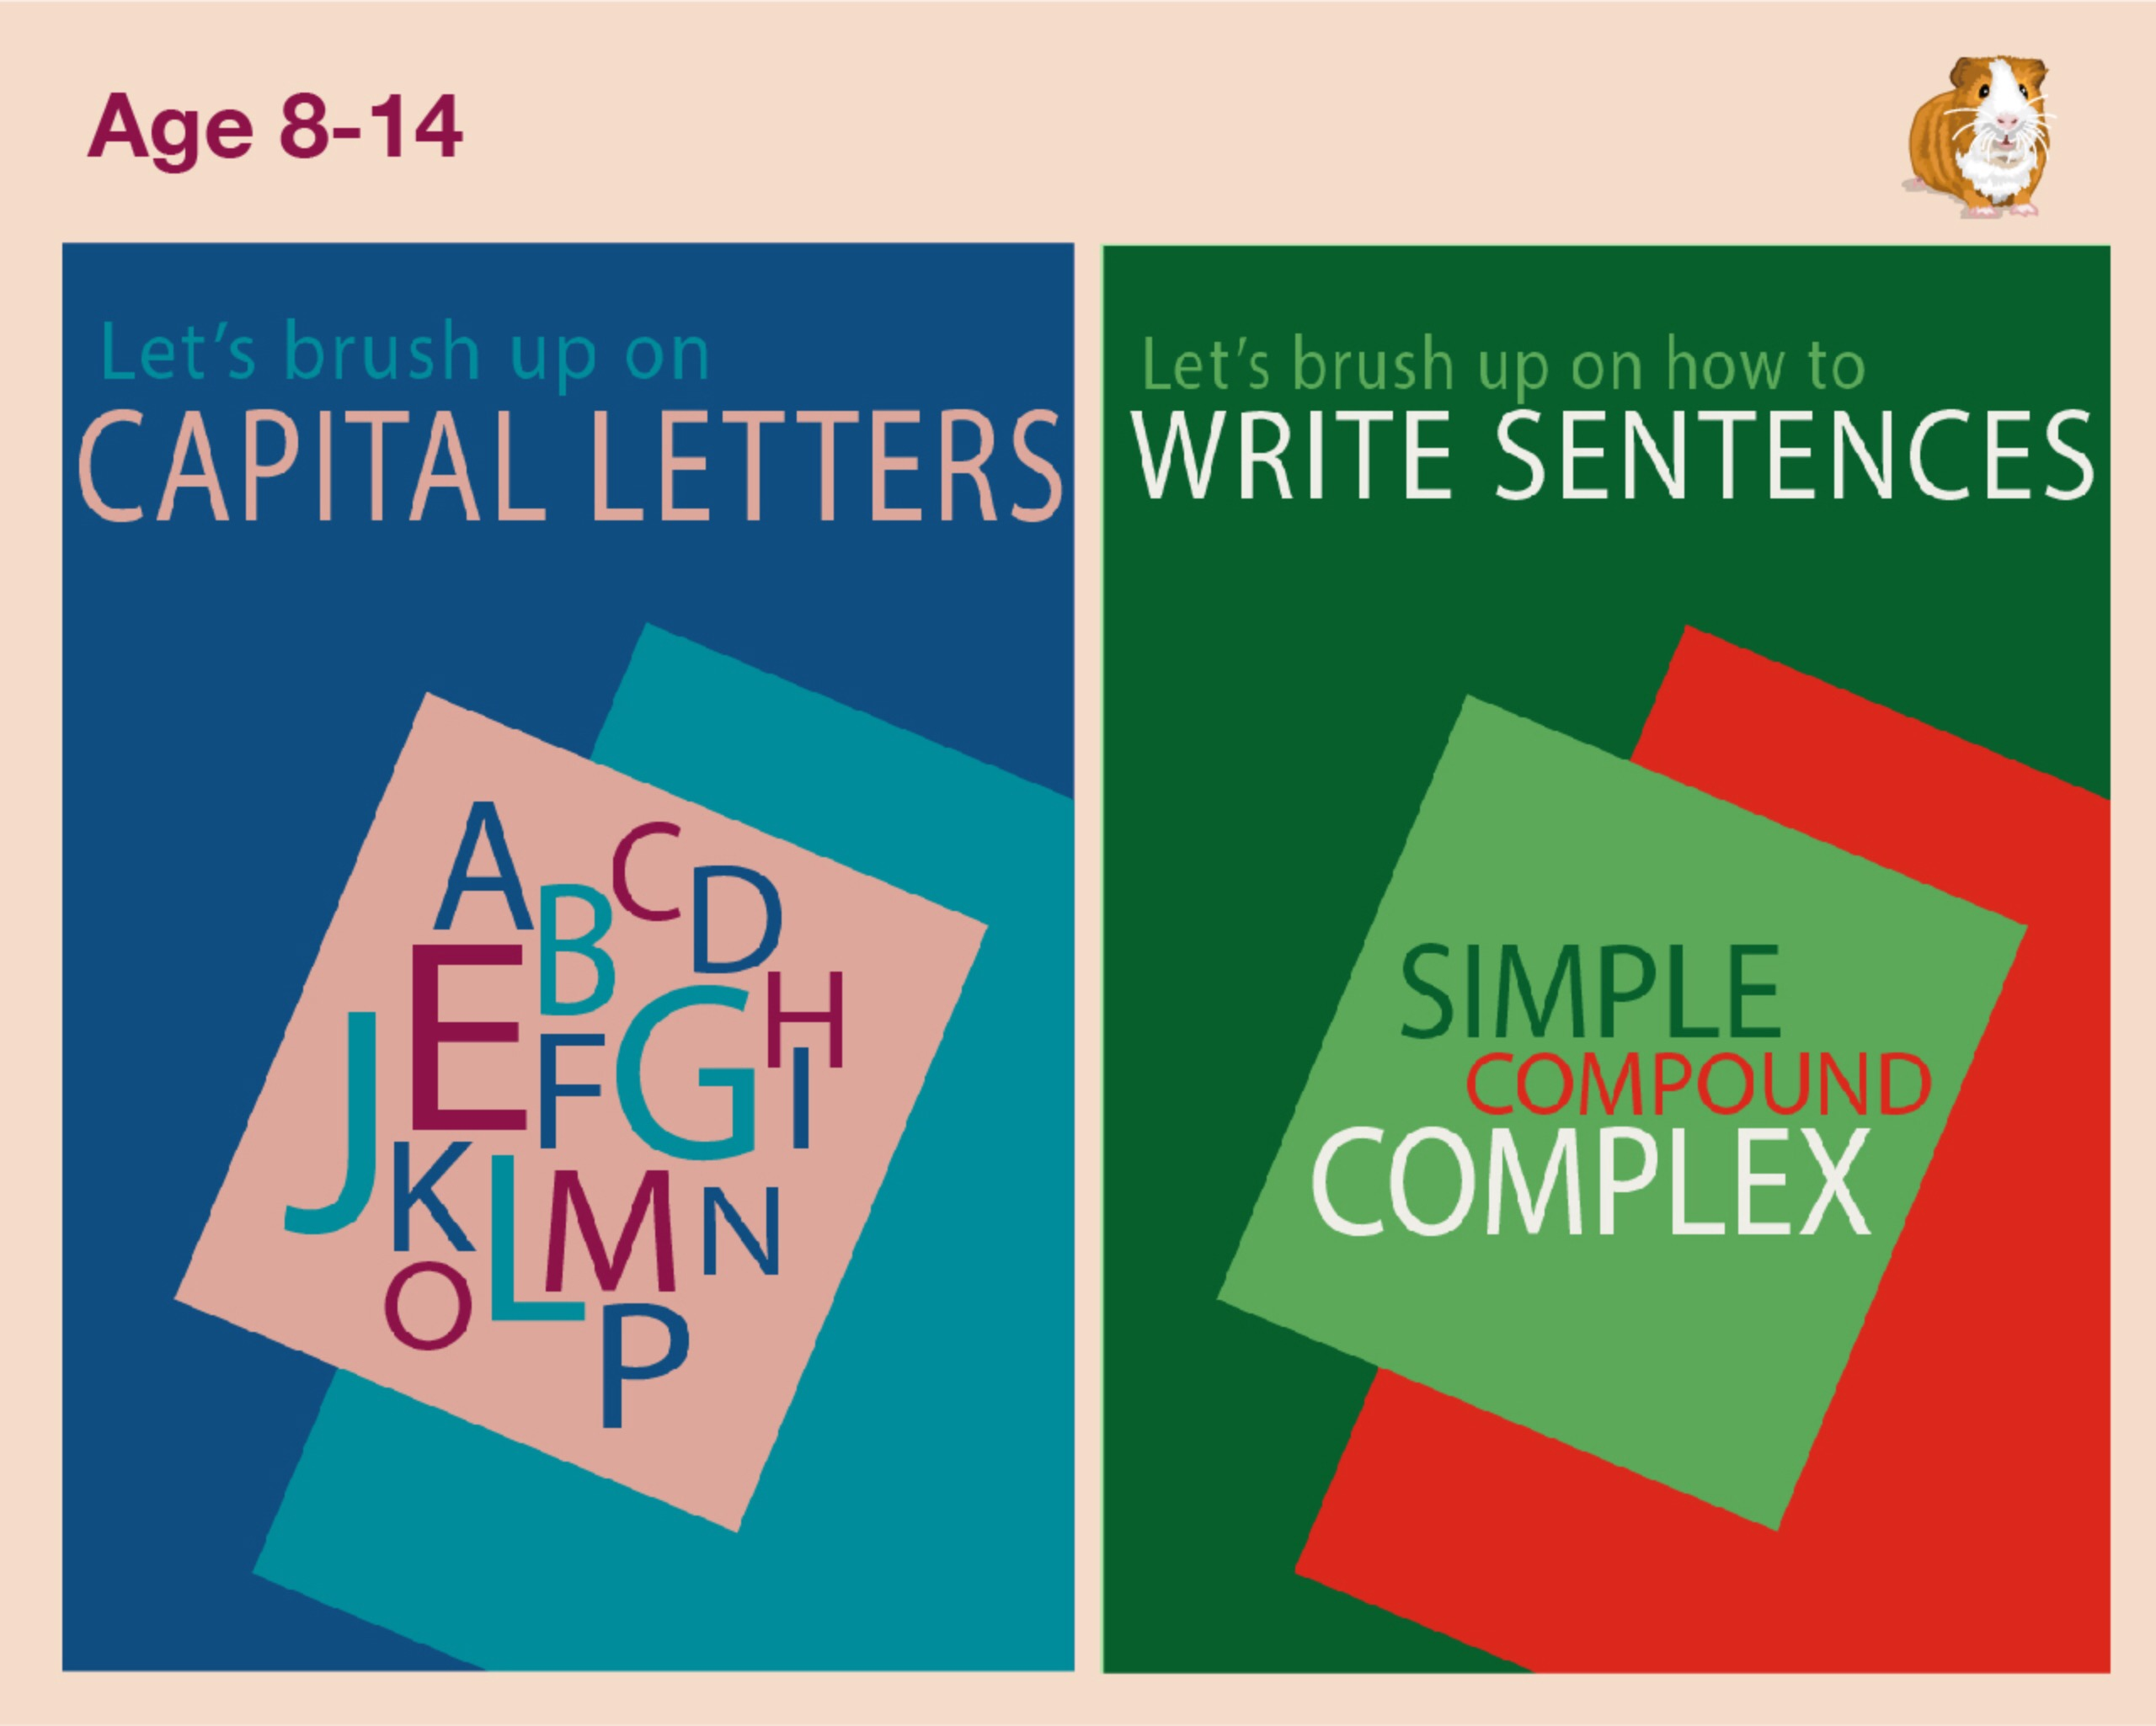 Let's Brush Up On Capital Letters And Writing Sentences (9-14 years)